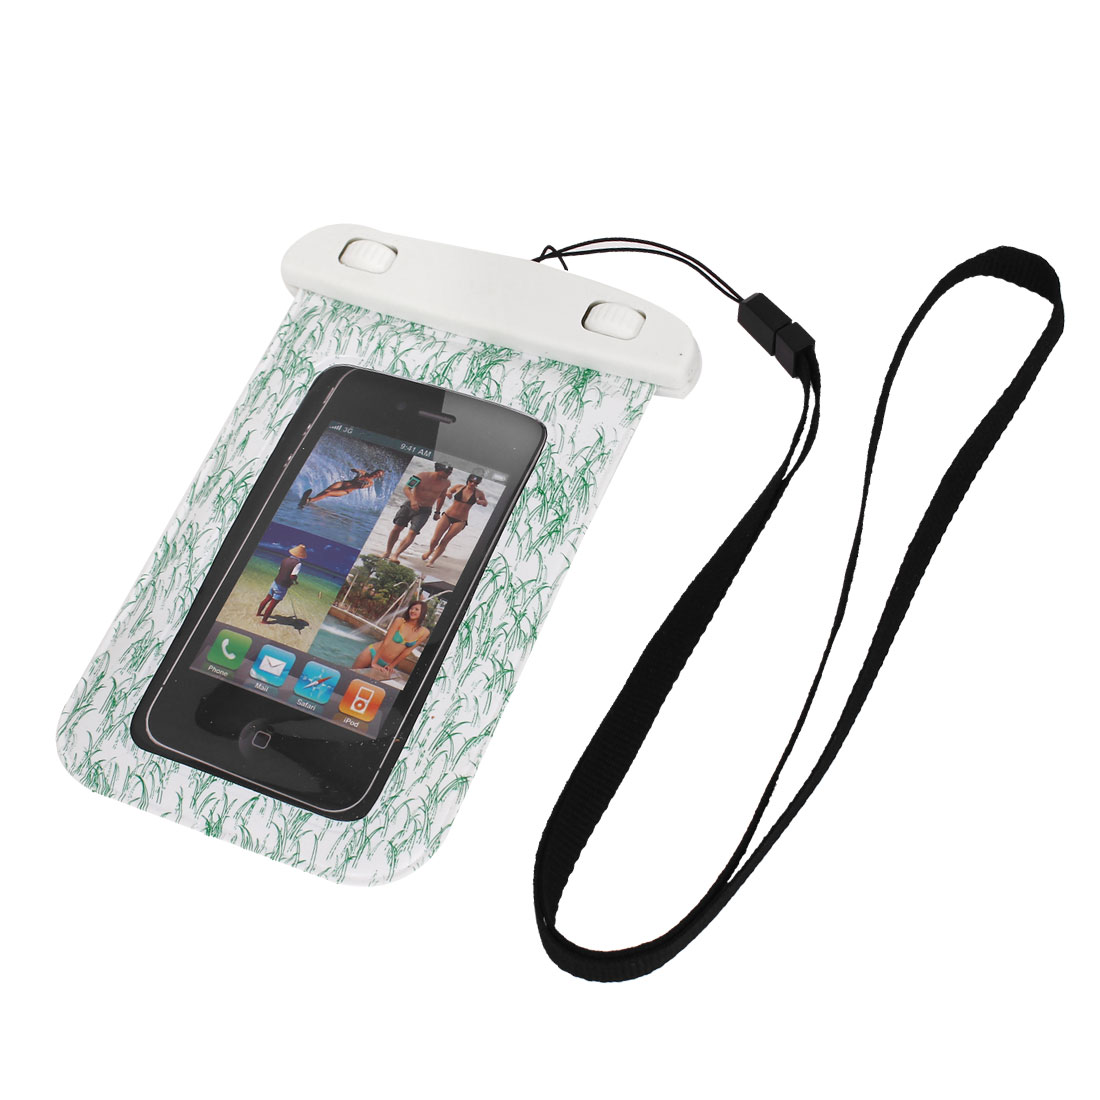 Unique Bargains Waterproof Swimming Pouch Bag Case Green for 4  Cell Phone w Neck Strap